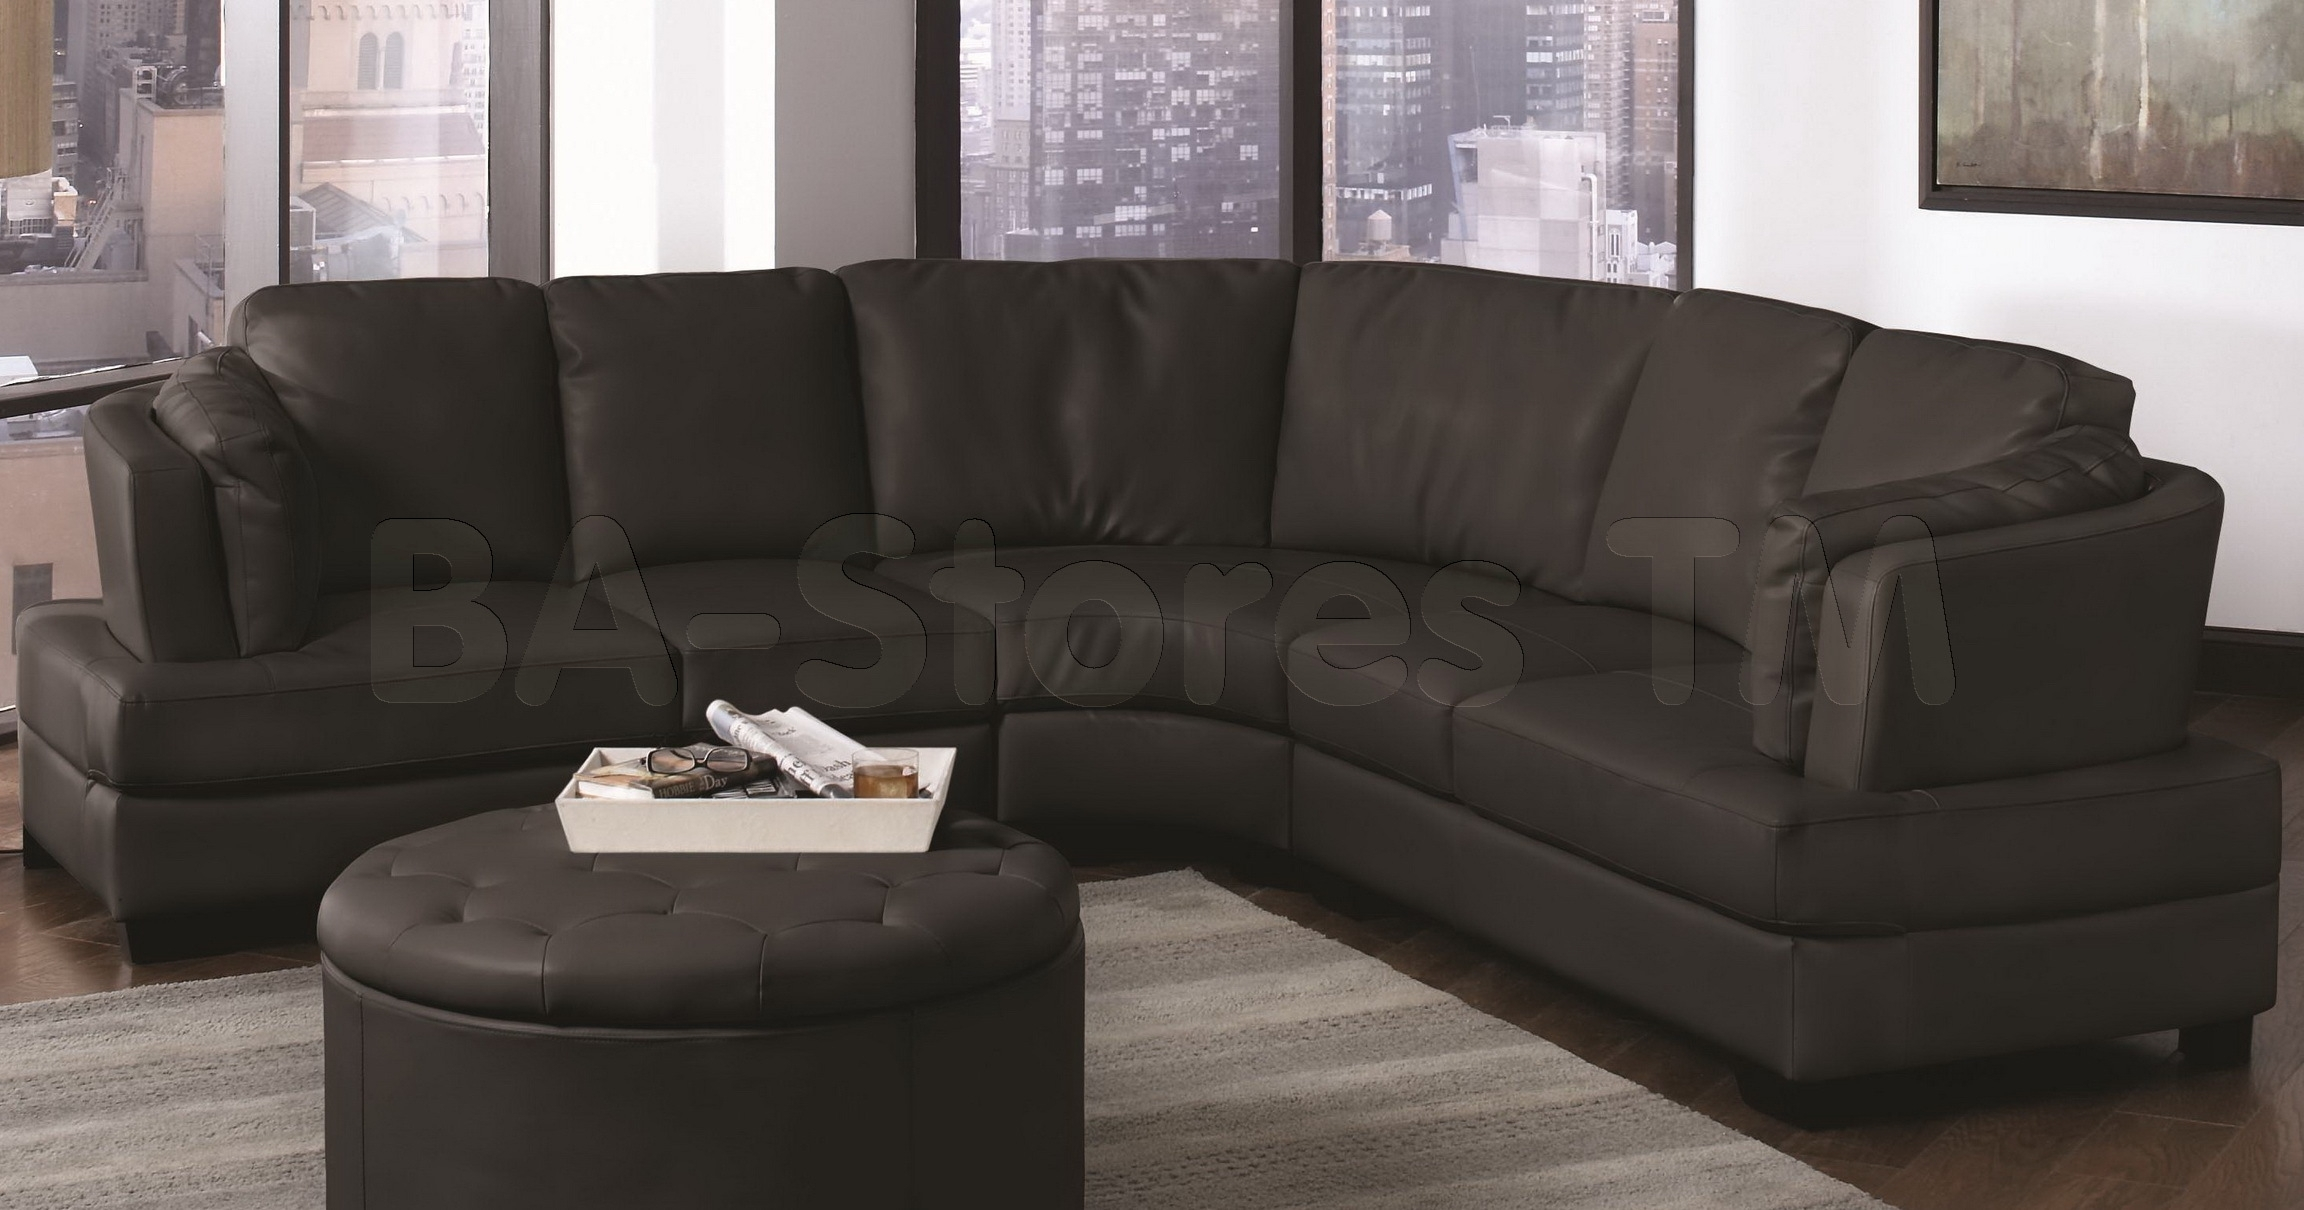 Amazing Round Sectional Sofa 63 With Additional Modern Sofa Ideas With Regard To Round Sectional Sofas (View 3 of 10)